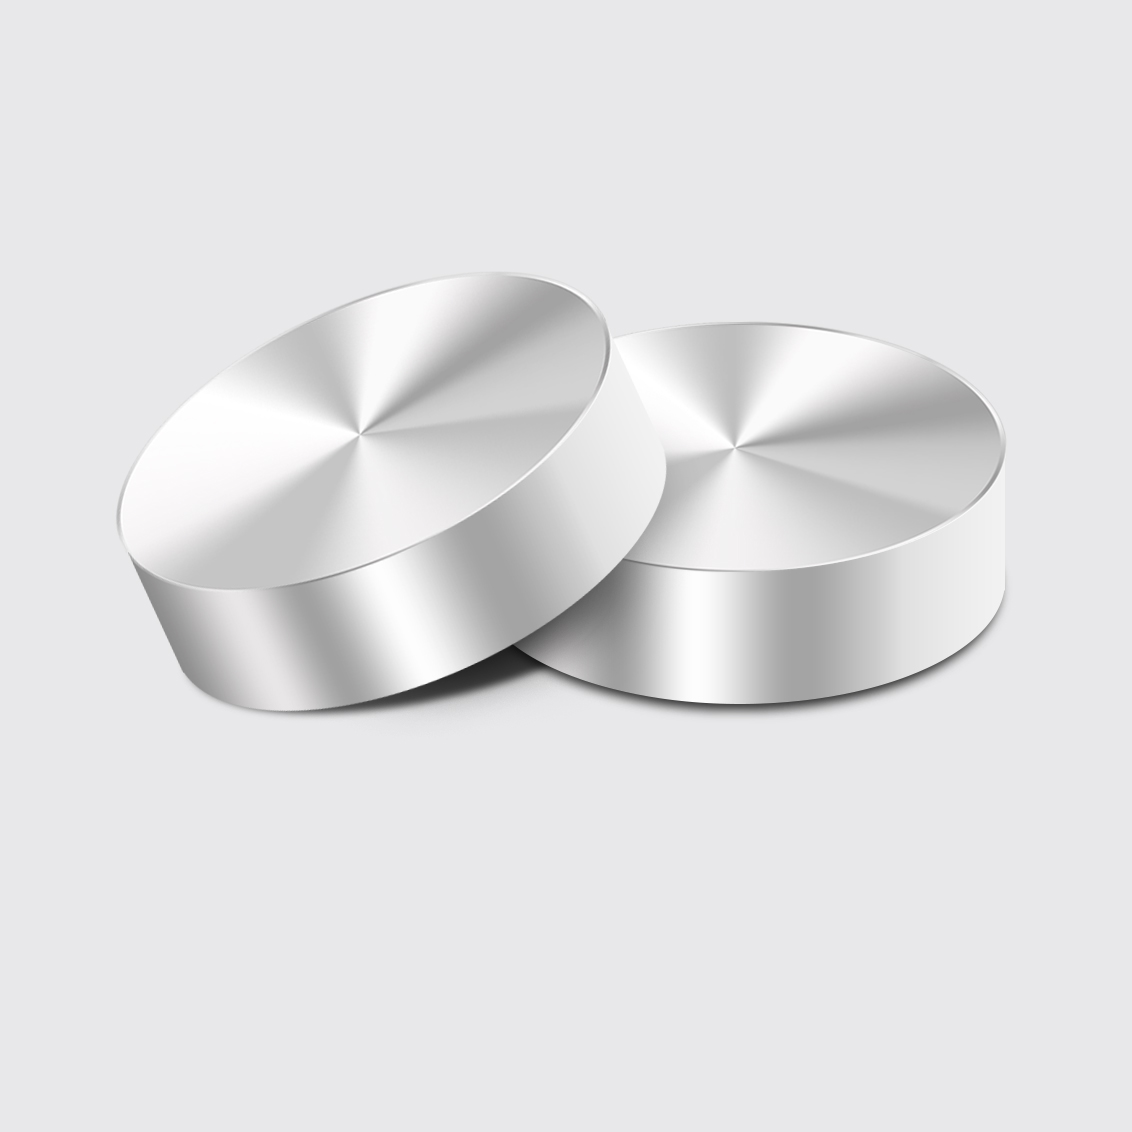 Super thick aluminum waferDY-001